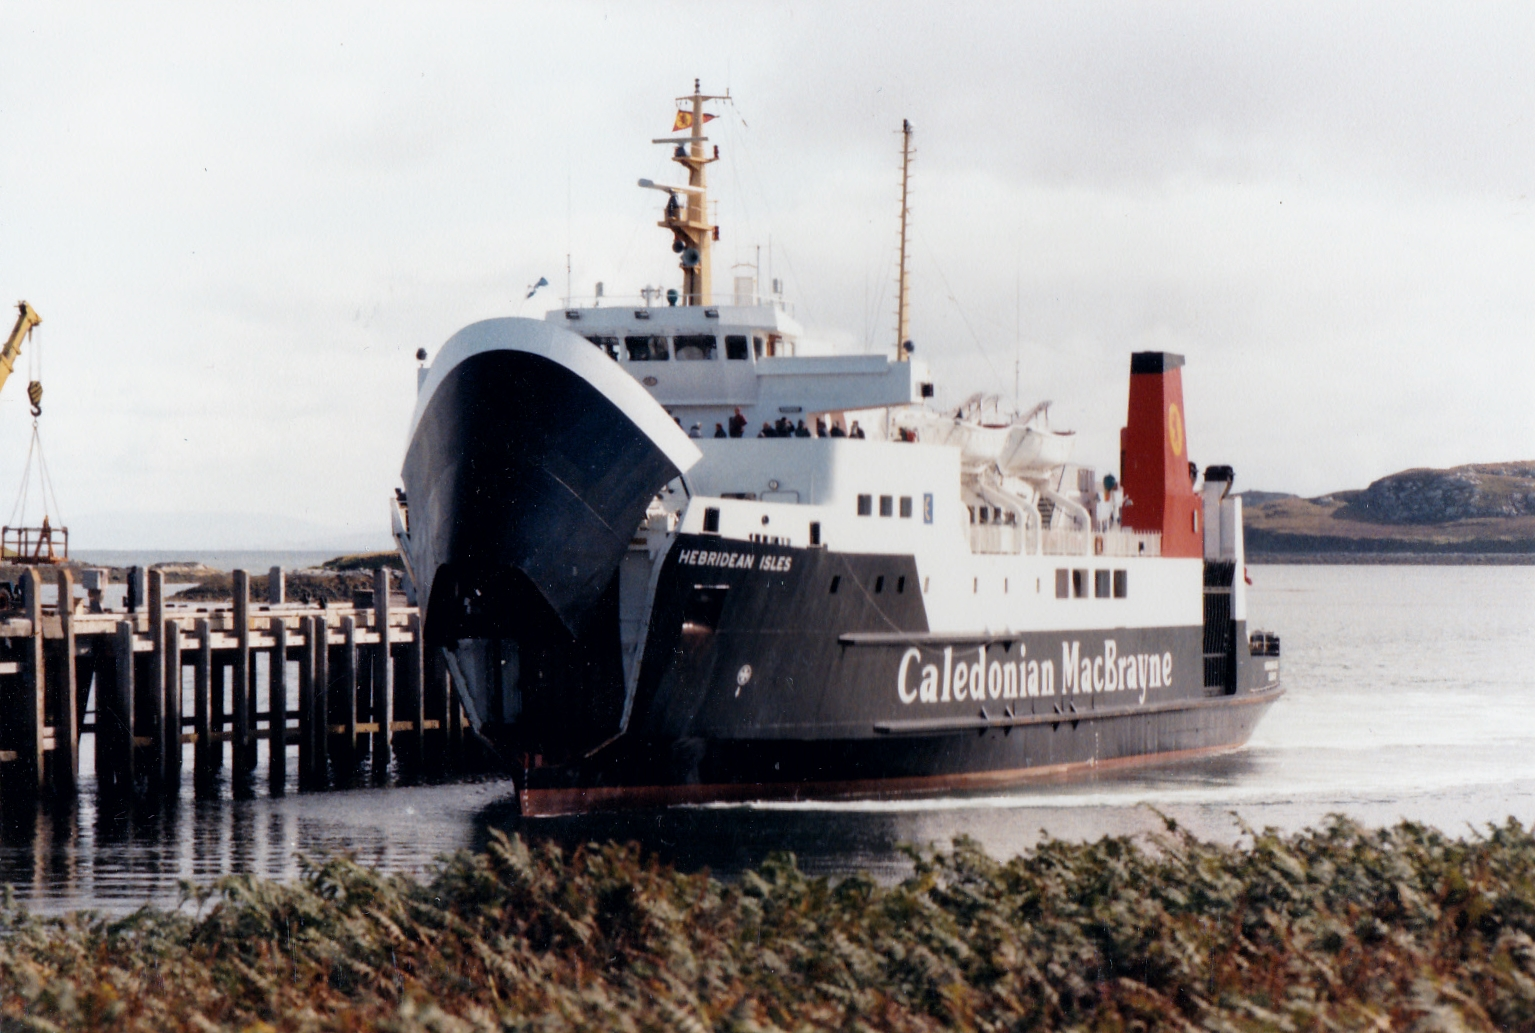 Hebridean Isles arriving at Lochmaddy (Jim Aikman Smith)